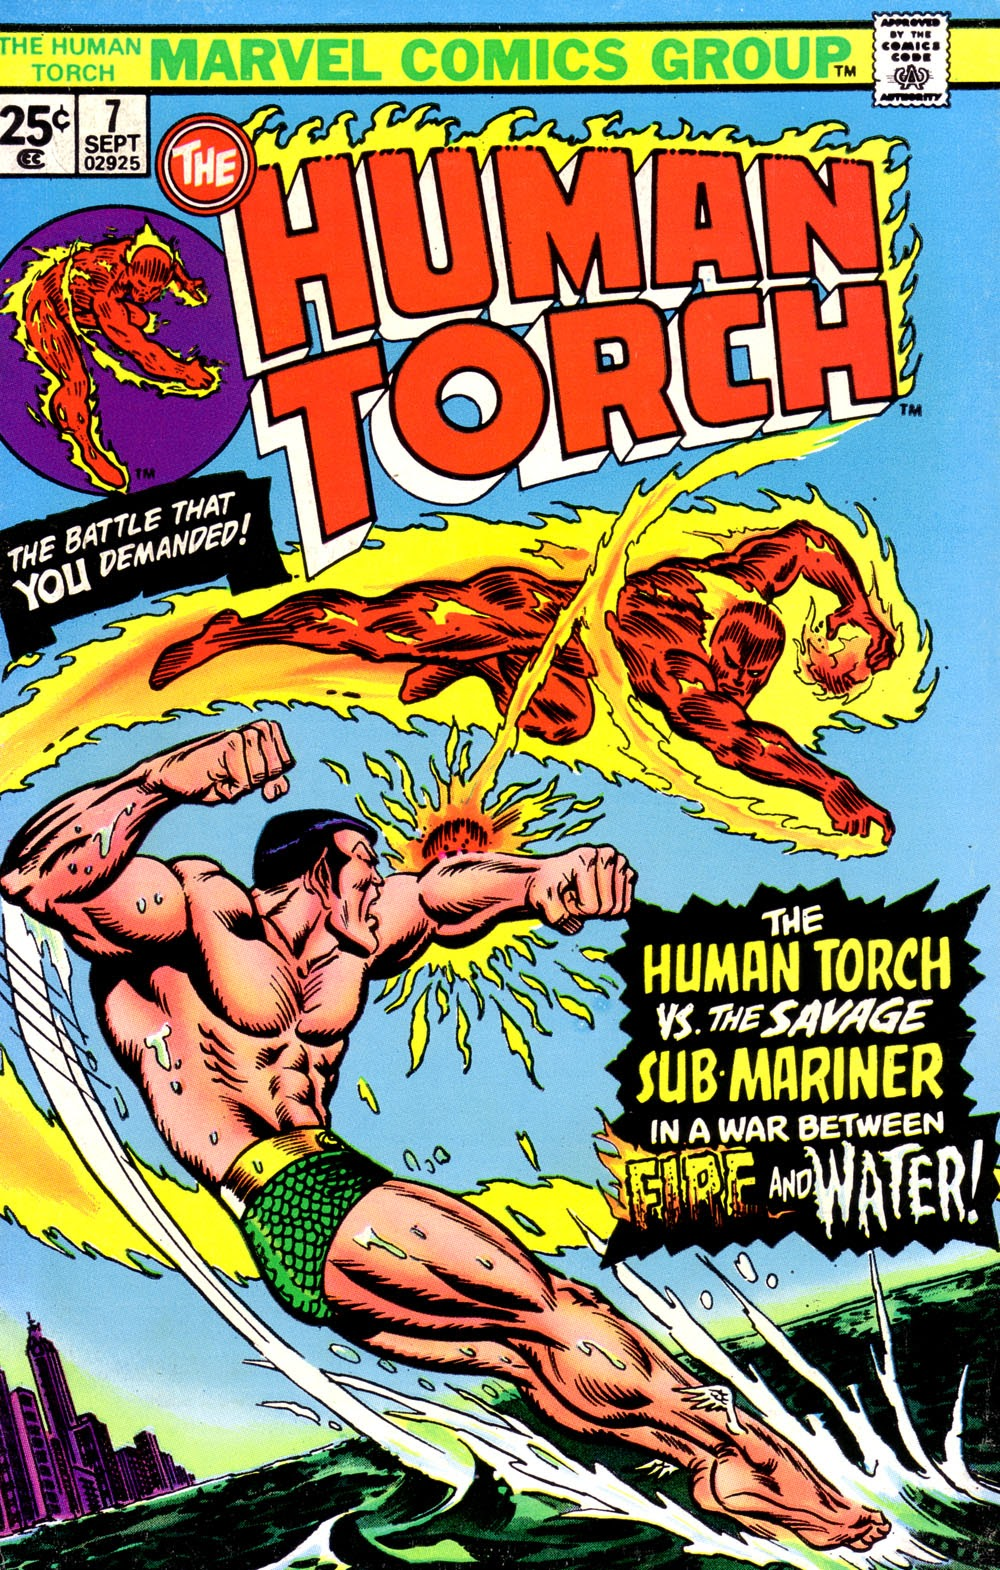 The Human Torch (1974) 7 Page 1